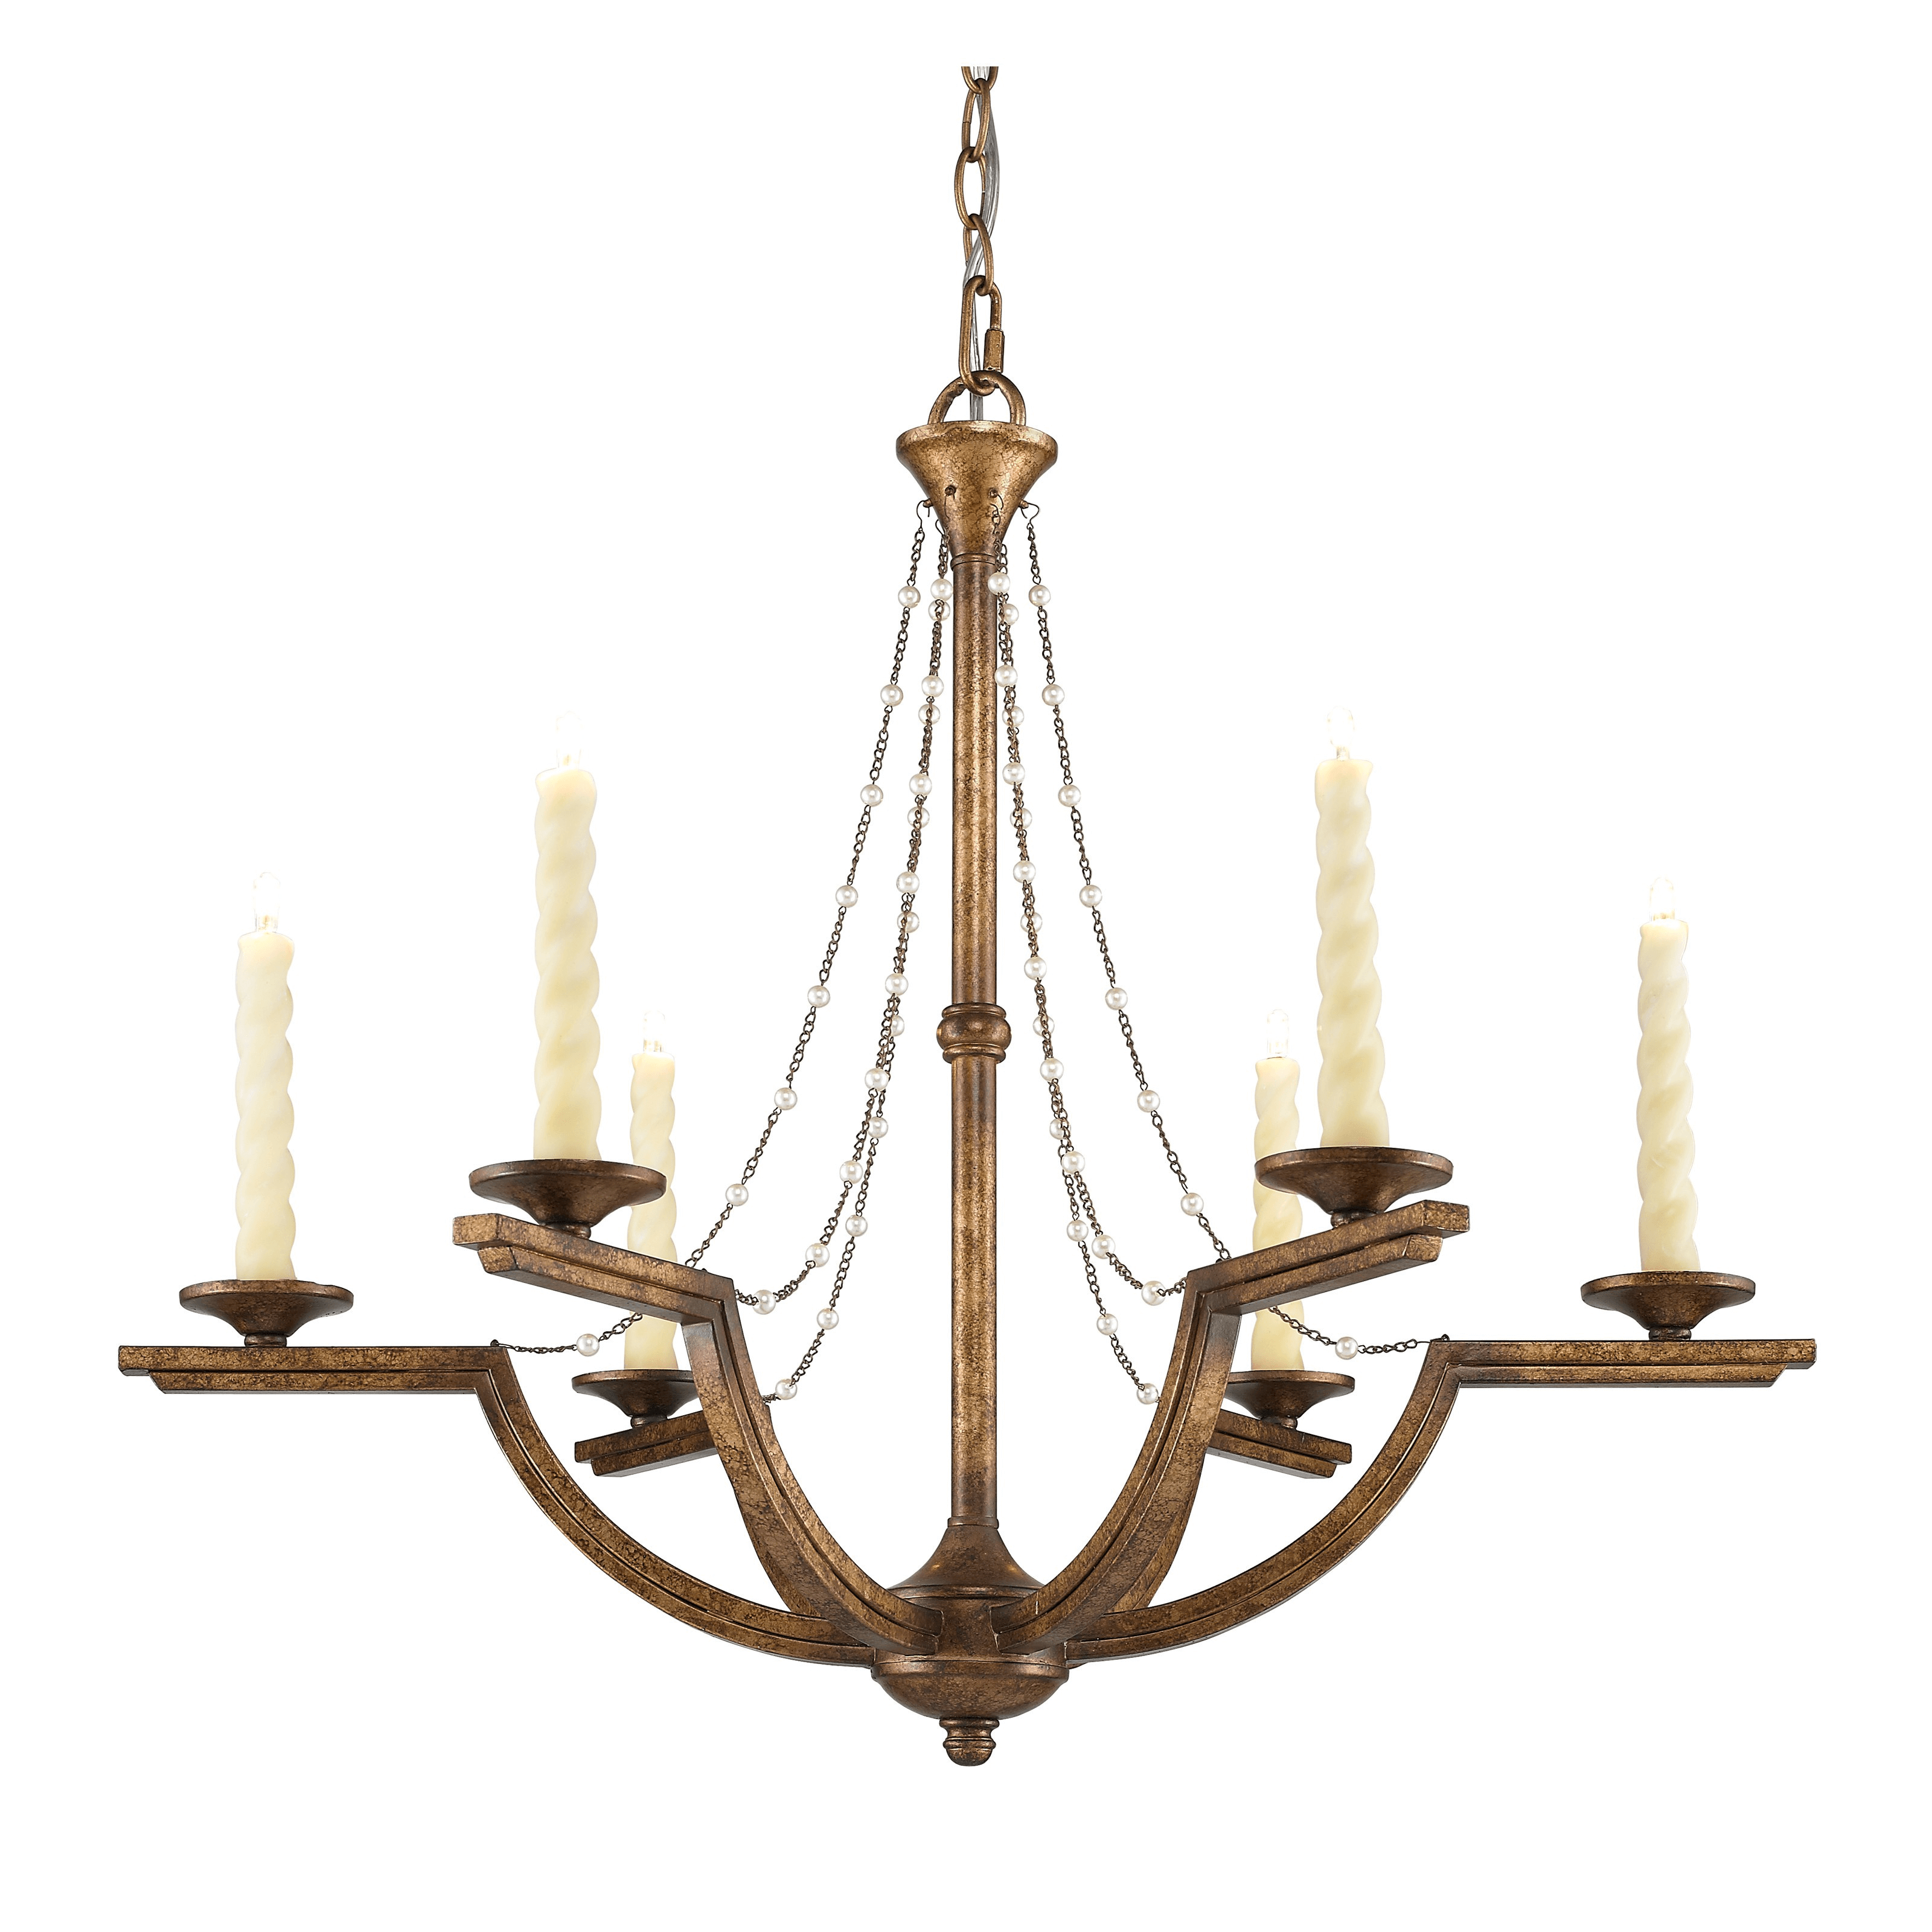 Plug in chandelier modern for ceiling candle lighting with 6 light